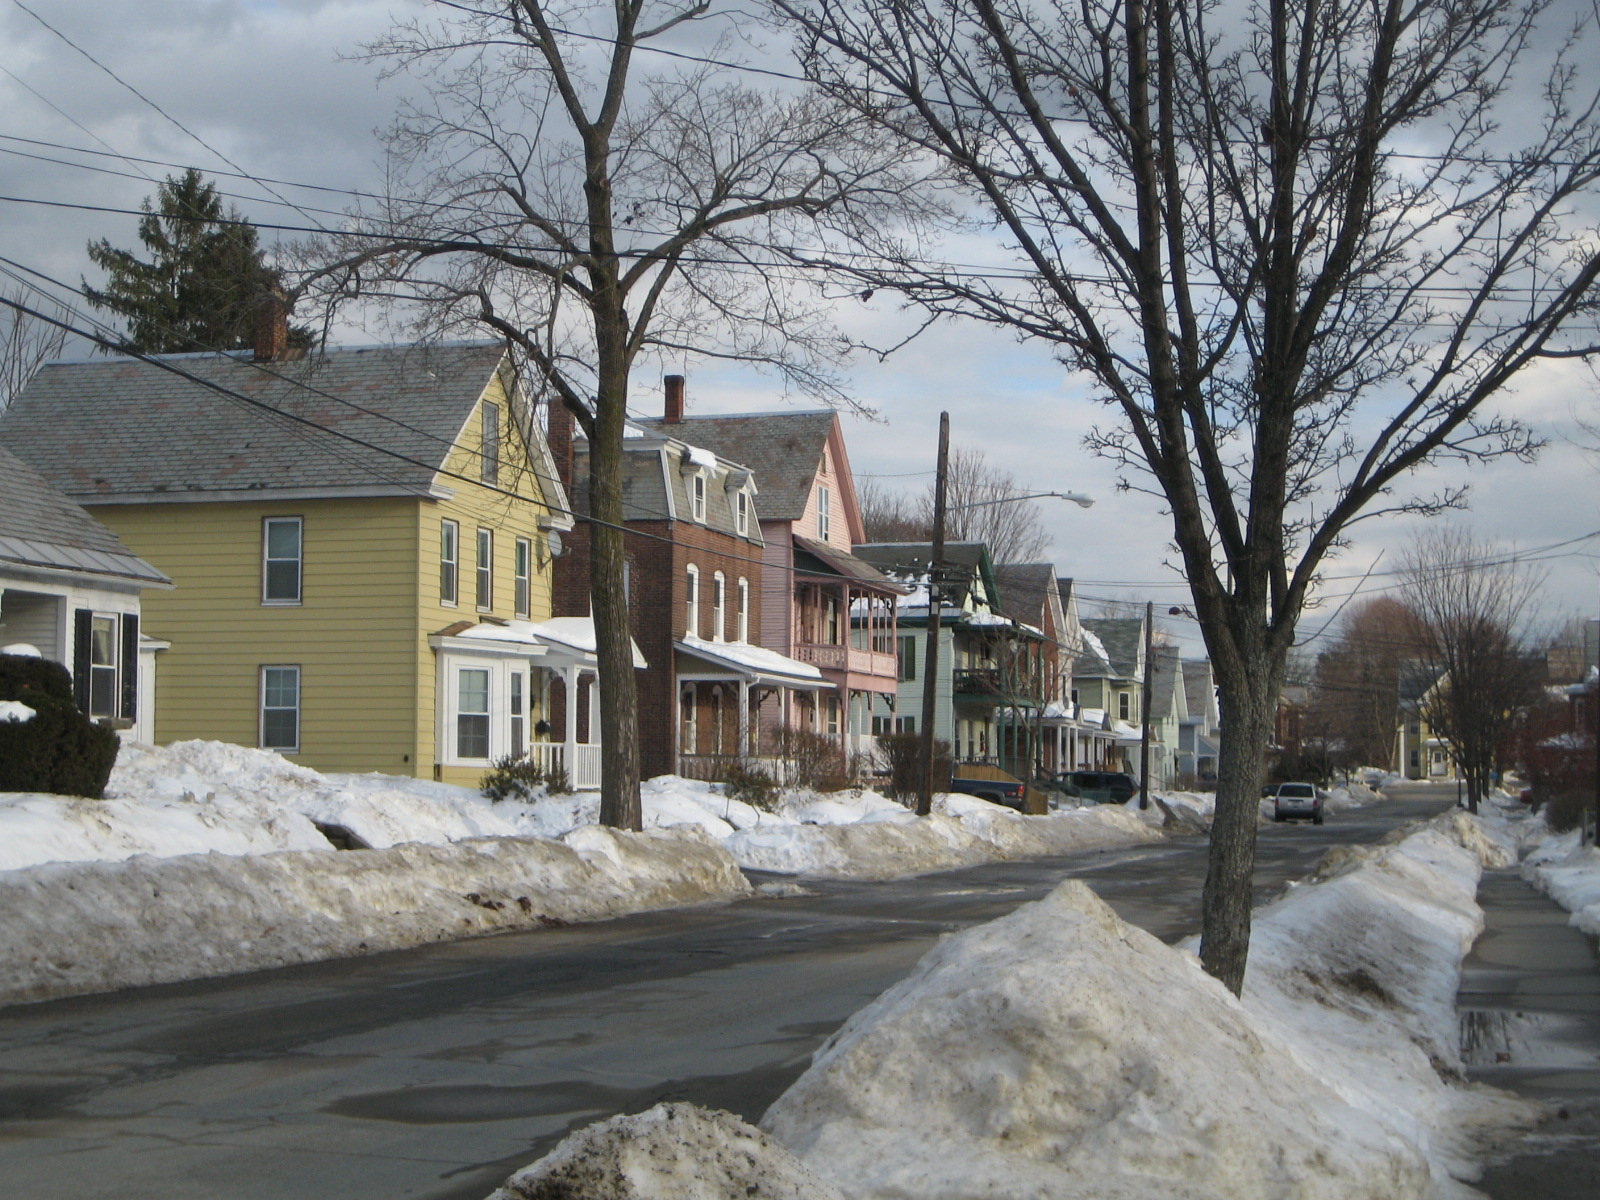 Turners falls ma zip code